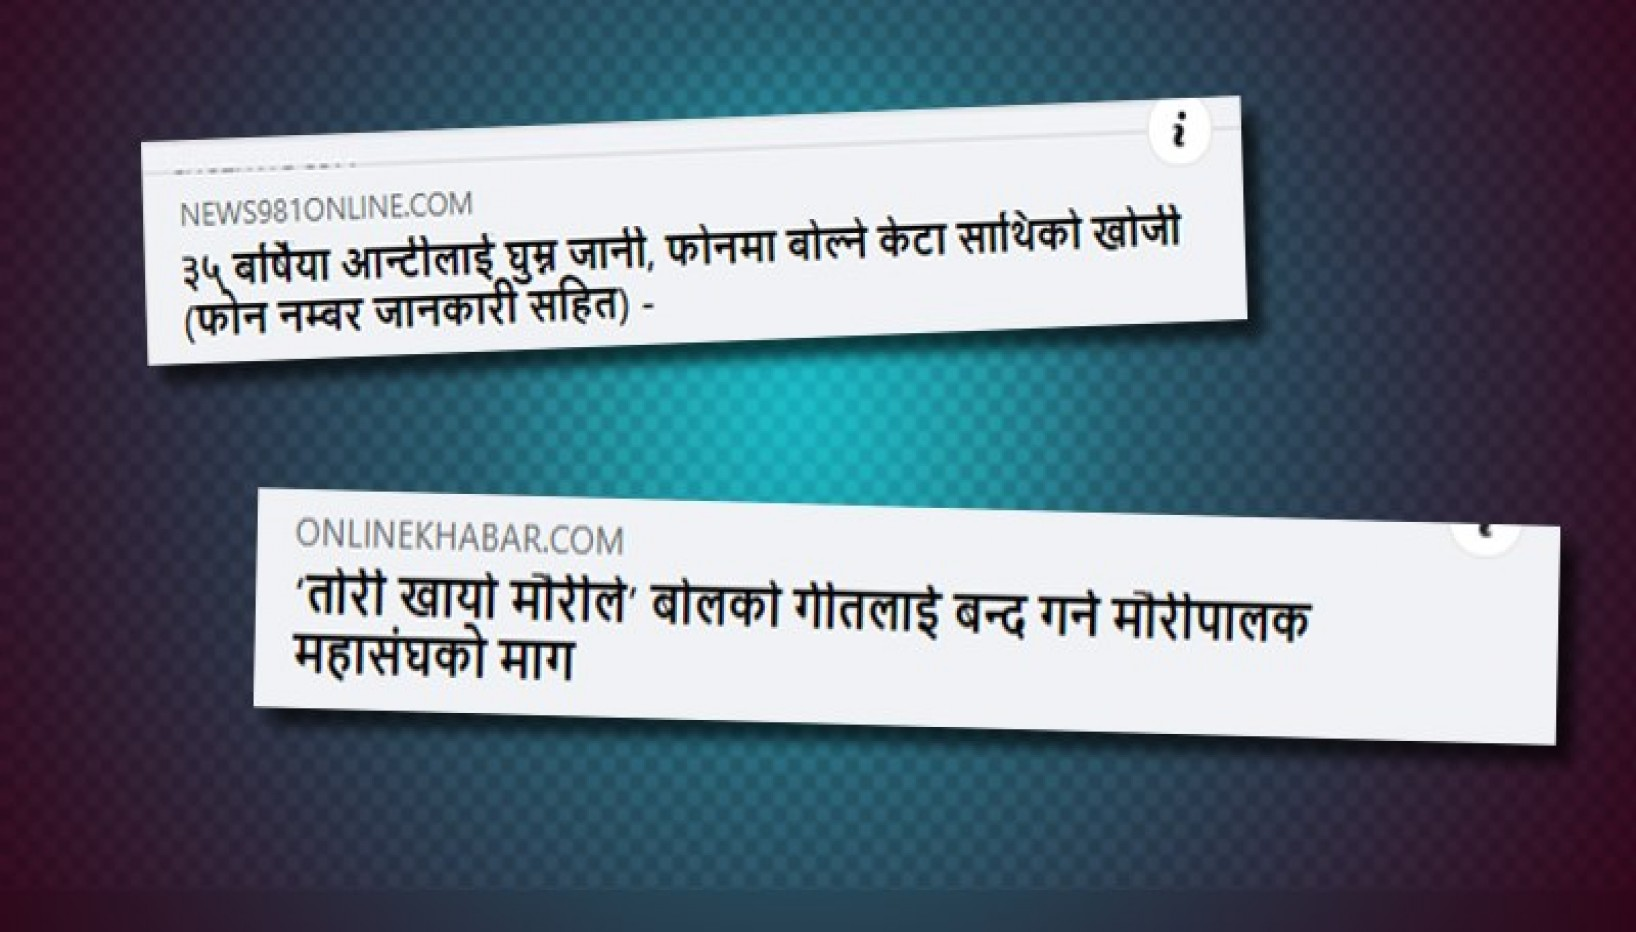 10 News Headlines That Reveal The Strange Preoccupations Of Nepalis